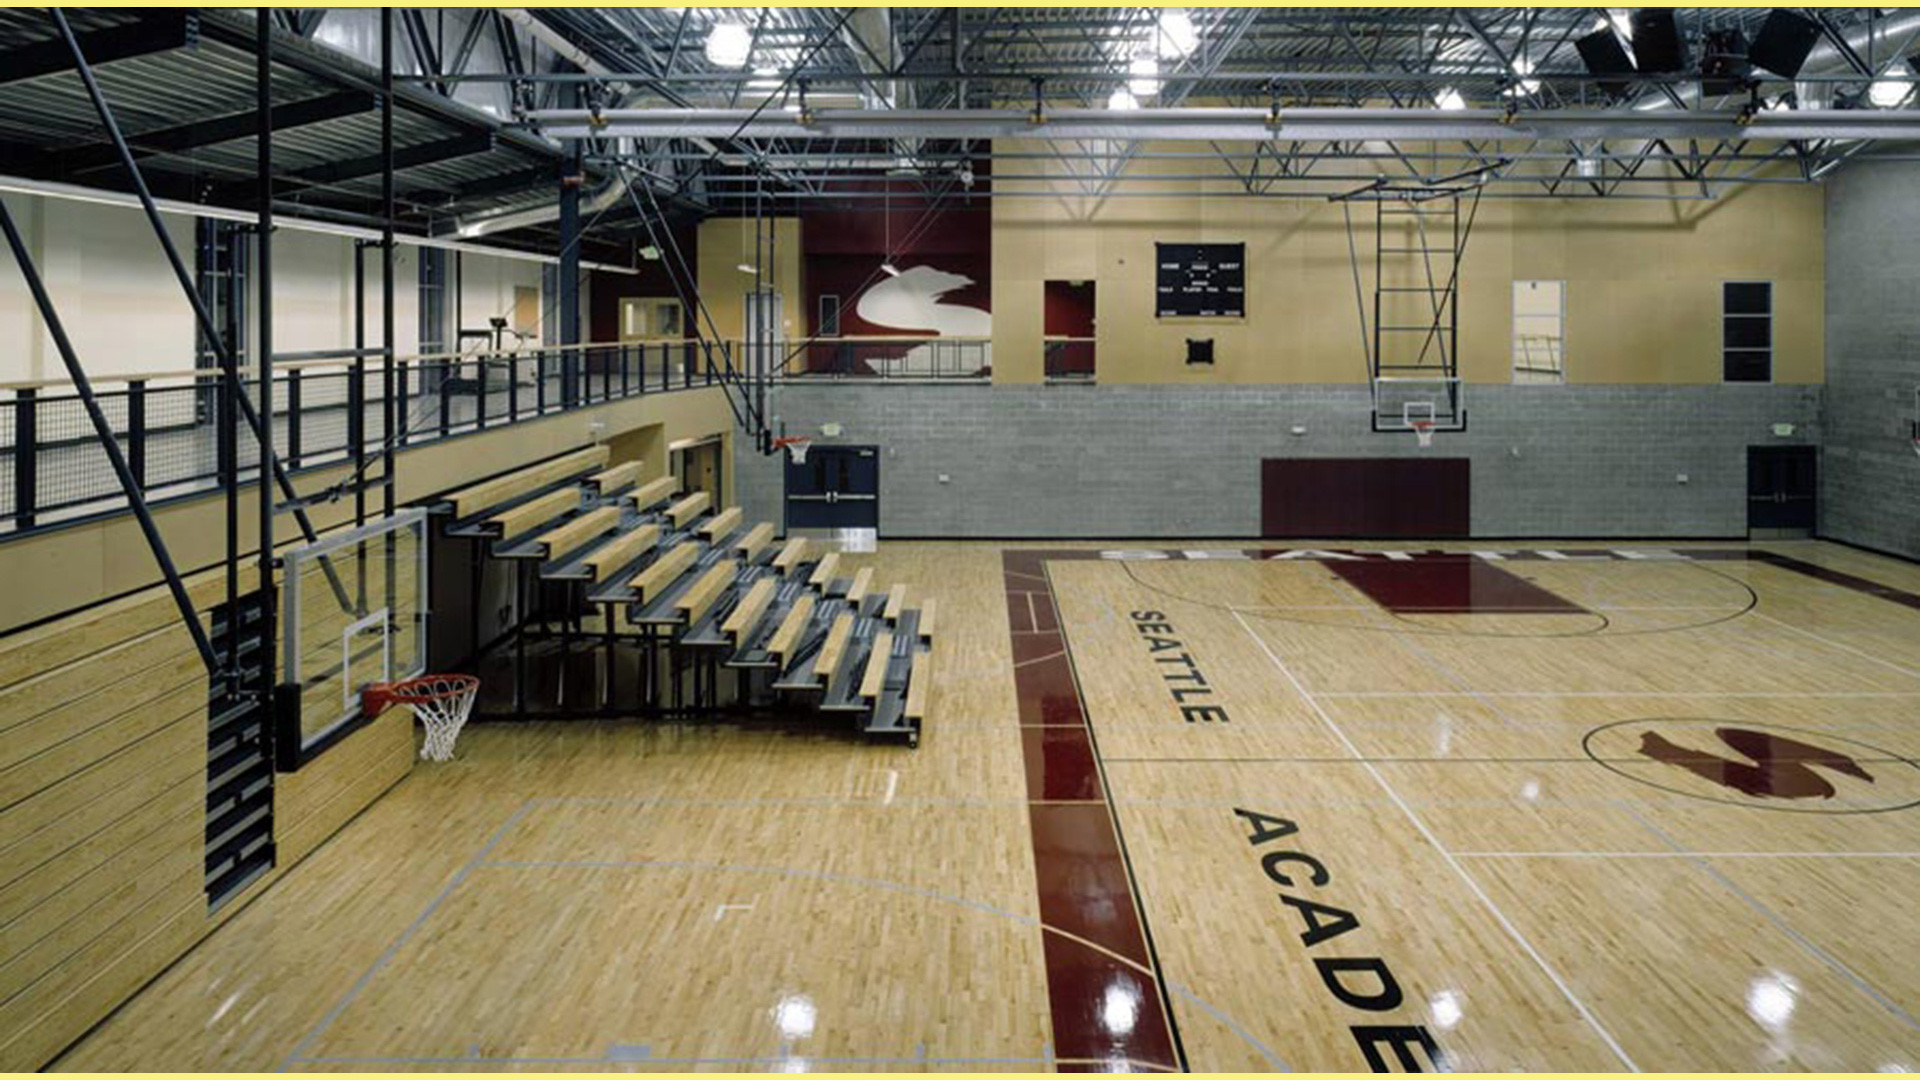 Seattle academy gymnasium swenson say fag t for How to build a basketball gym